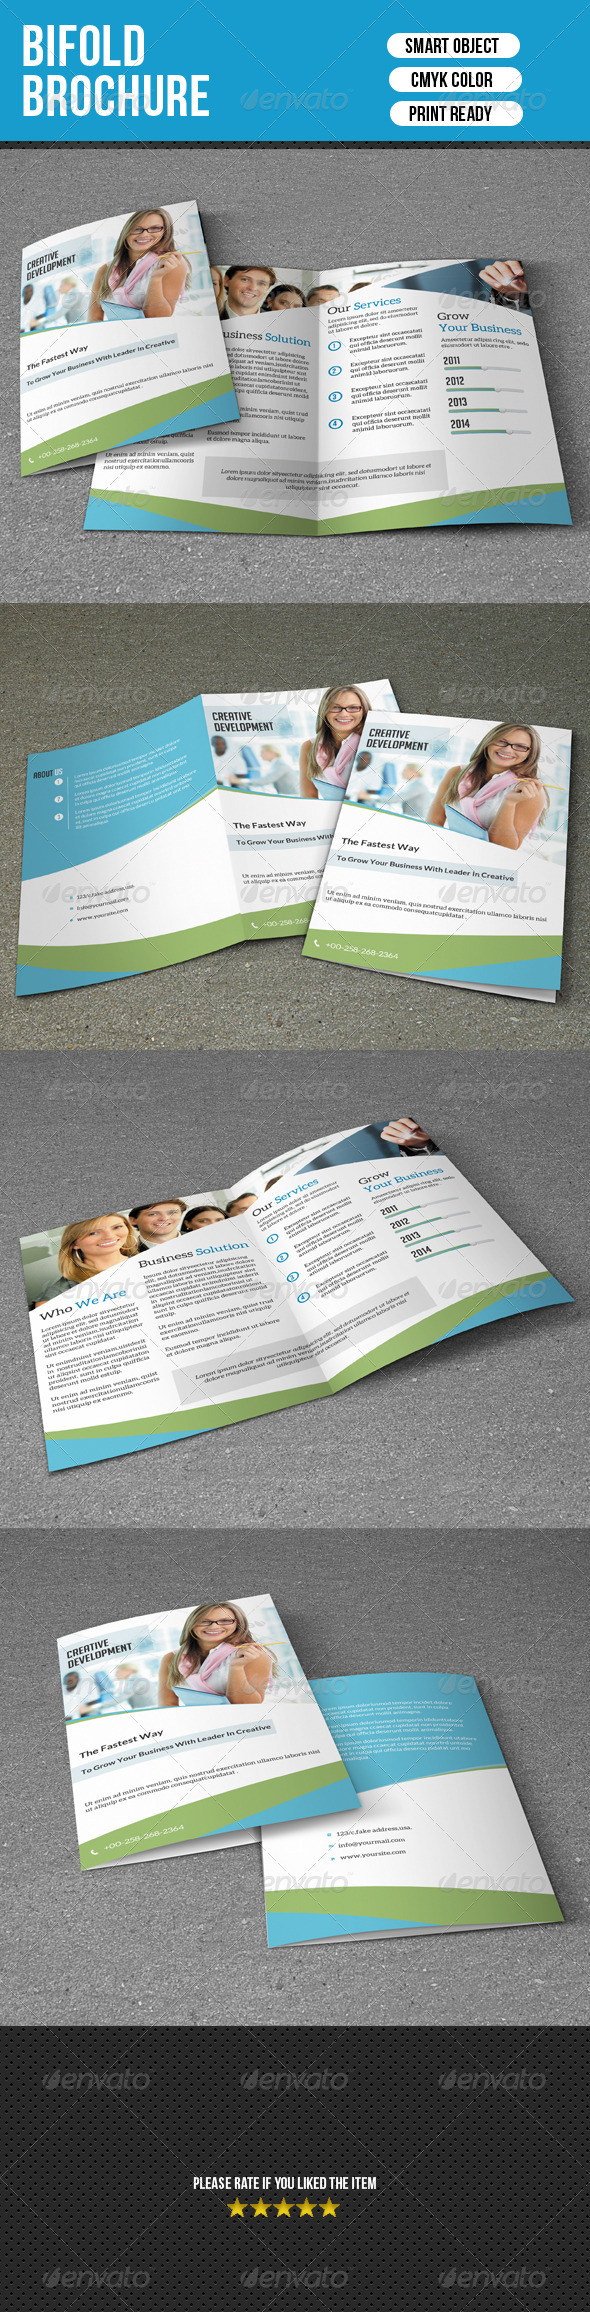 GraphicRiver Bifold Business Brochure 7591900